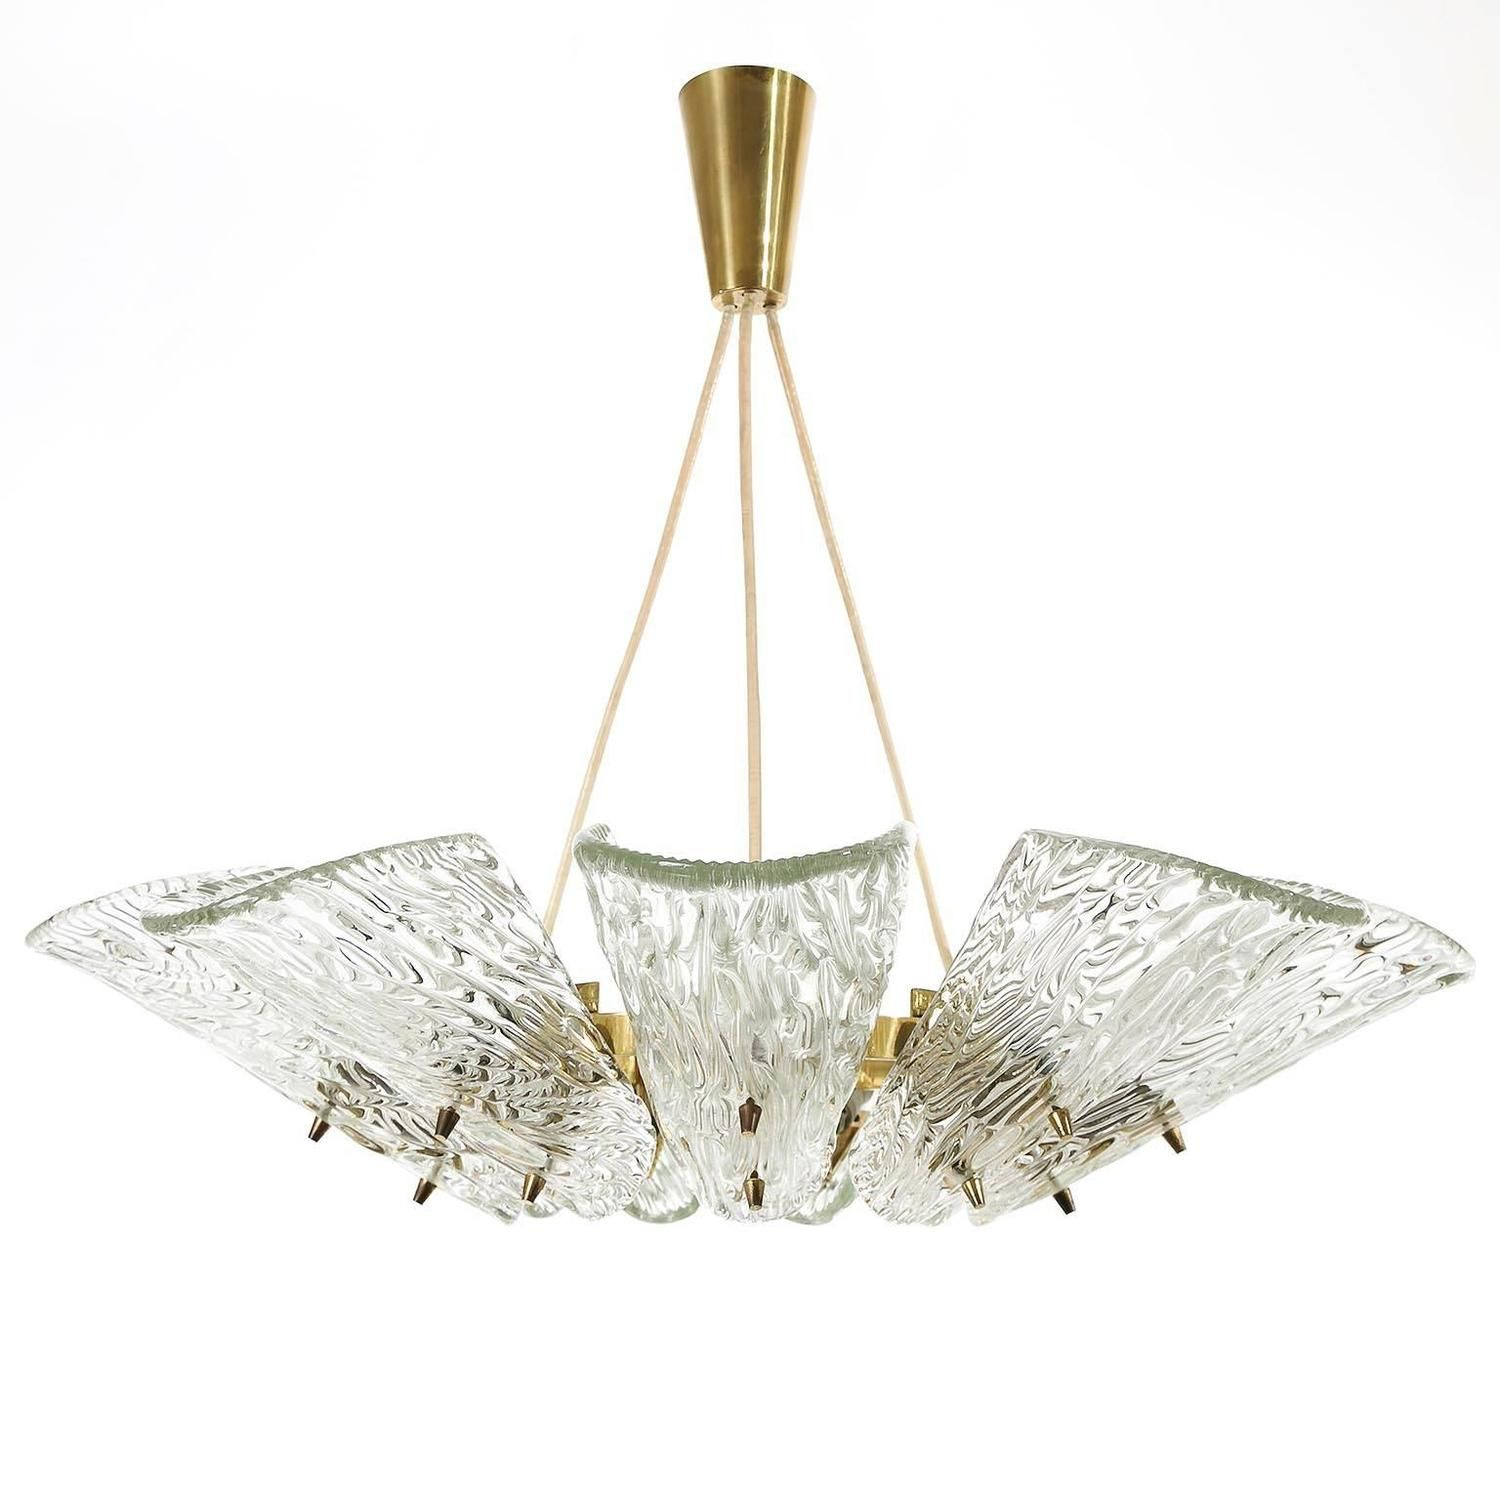 chandeliers and pendant lighting. Two Large Kalmar Pendant Lights Or Chandeliers Brass And Glass Austria 1950 Lighting L